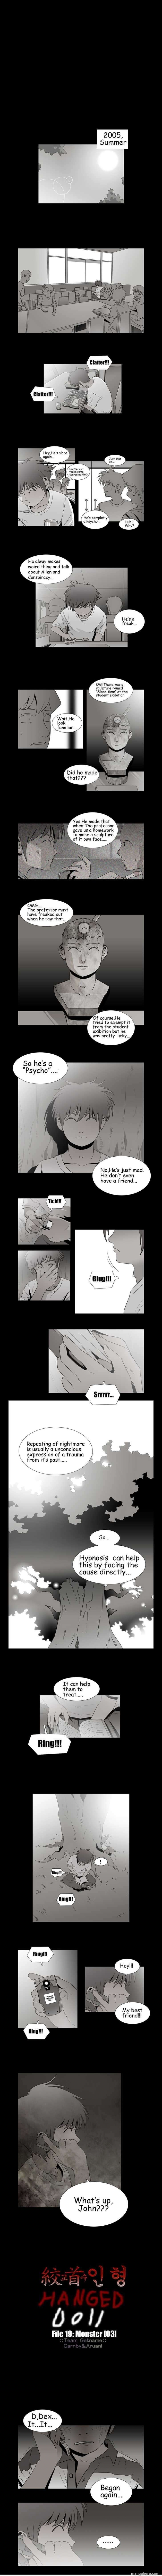 Hanged Doll 59 Page 1